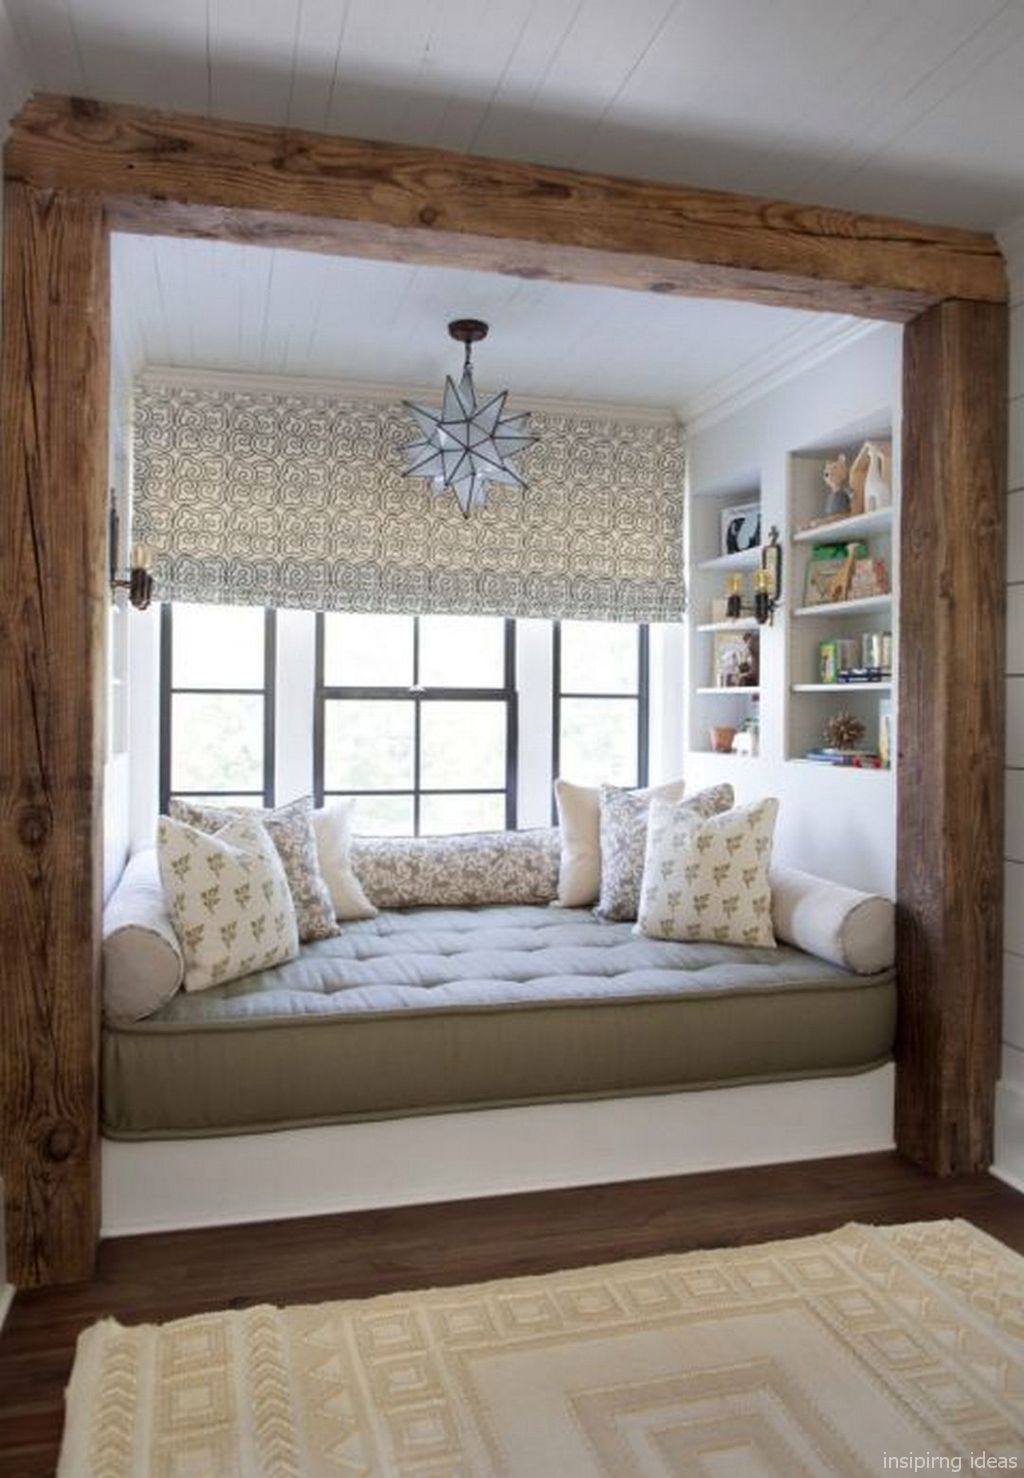 Modern window trim design ideas windowtrimideasrustic rustic home design farmhouse design modern house